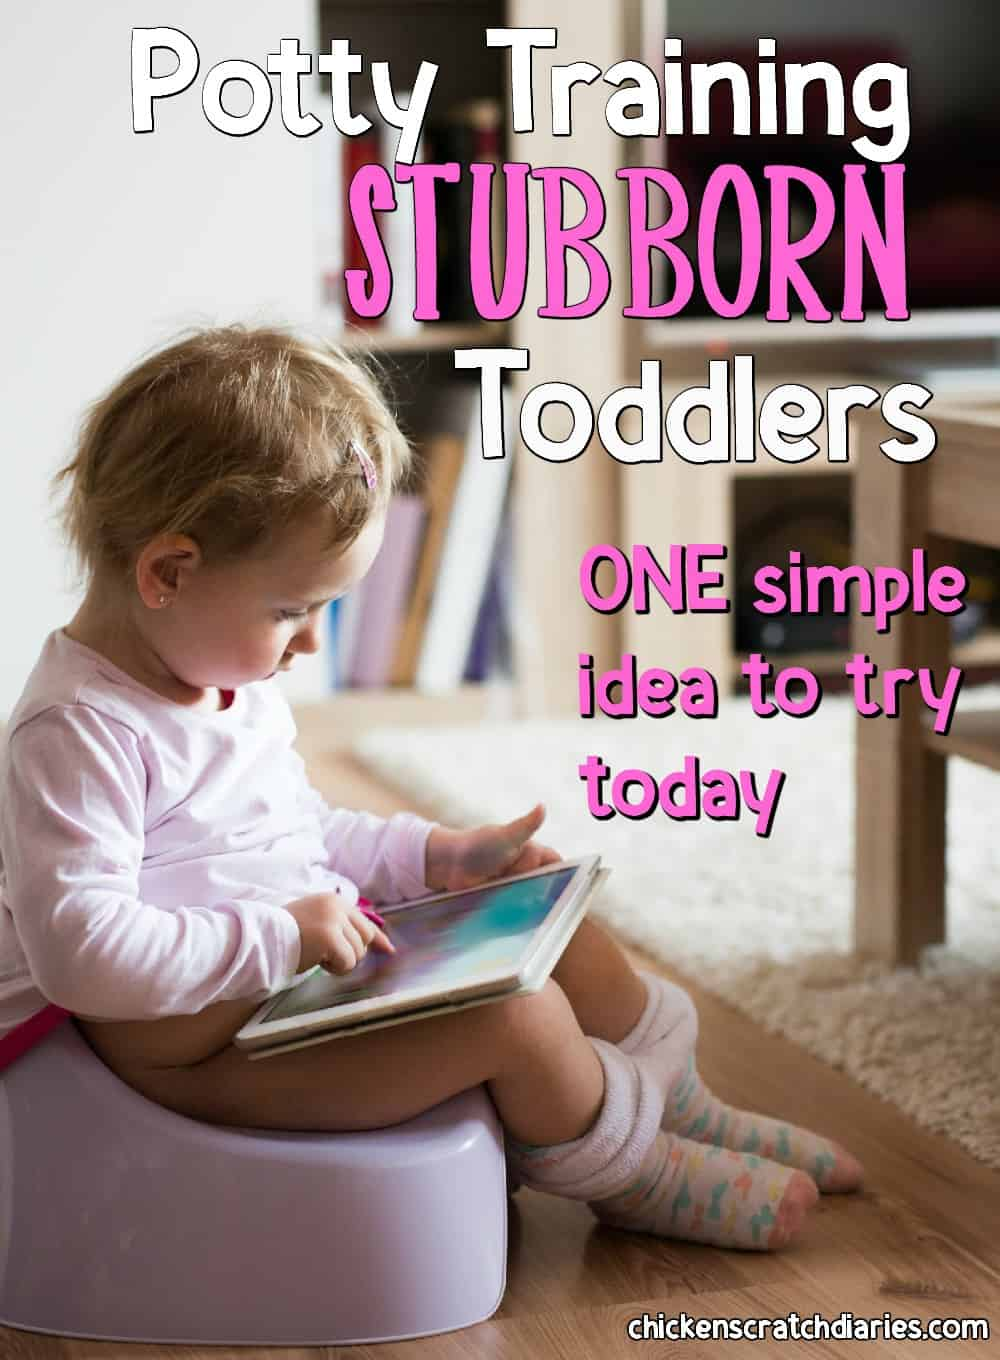 Potty training advice for stubborn toddlers who just won't comply! #PottyTraining #Advice #ToddlerLife